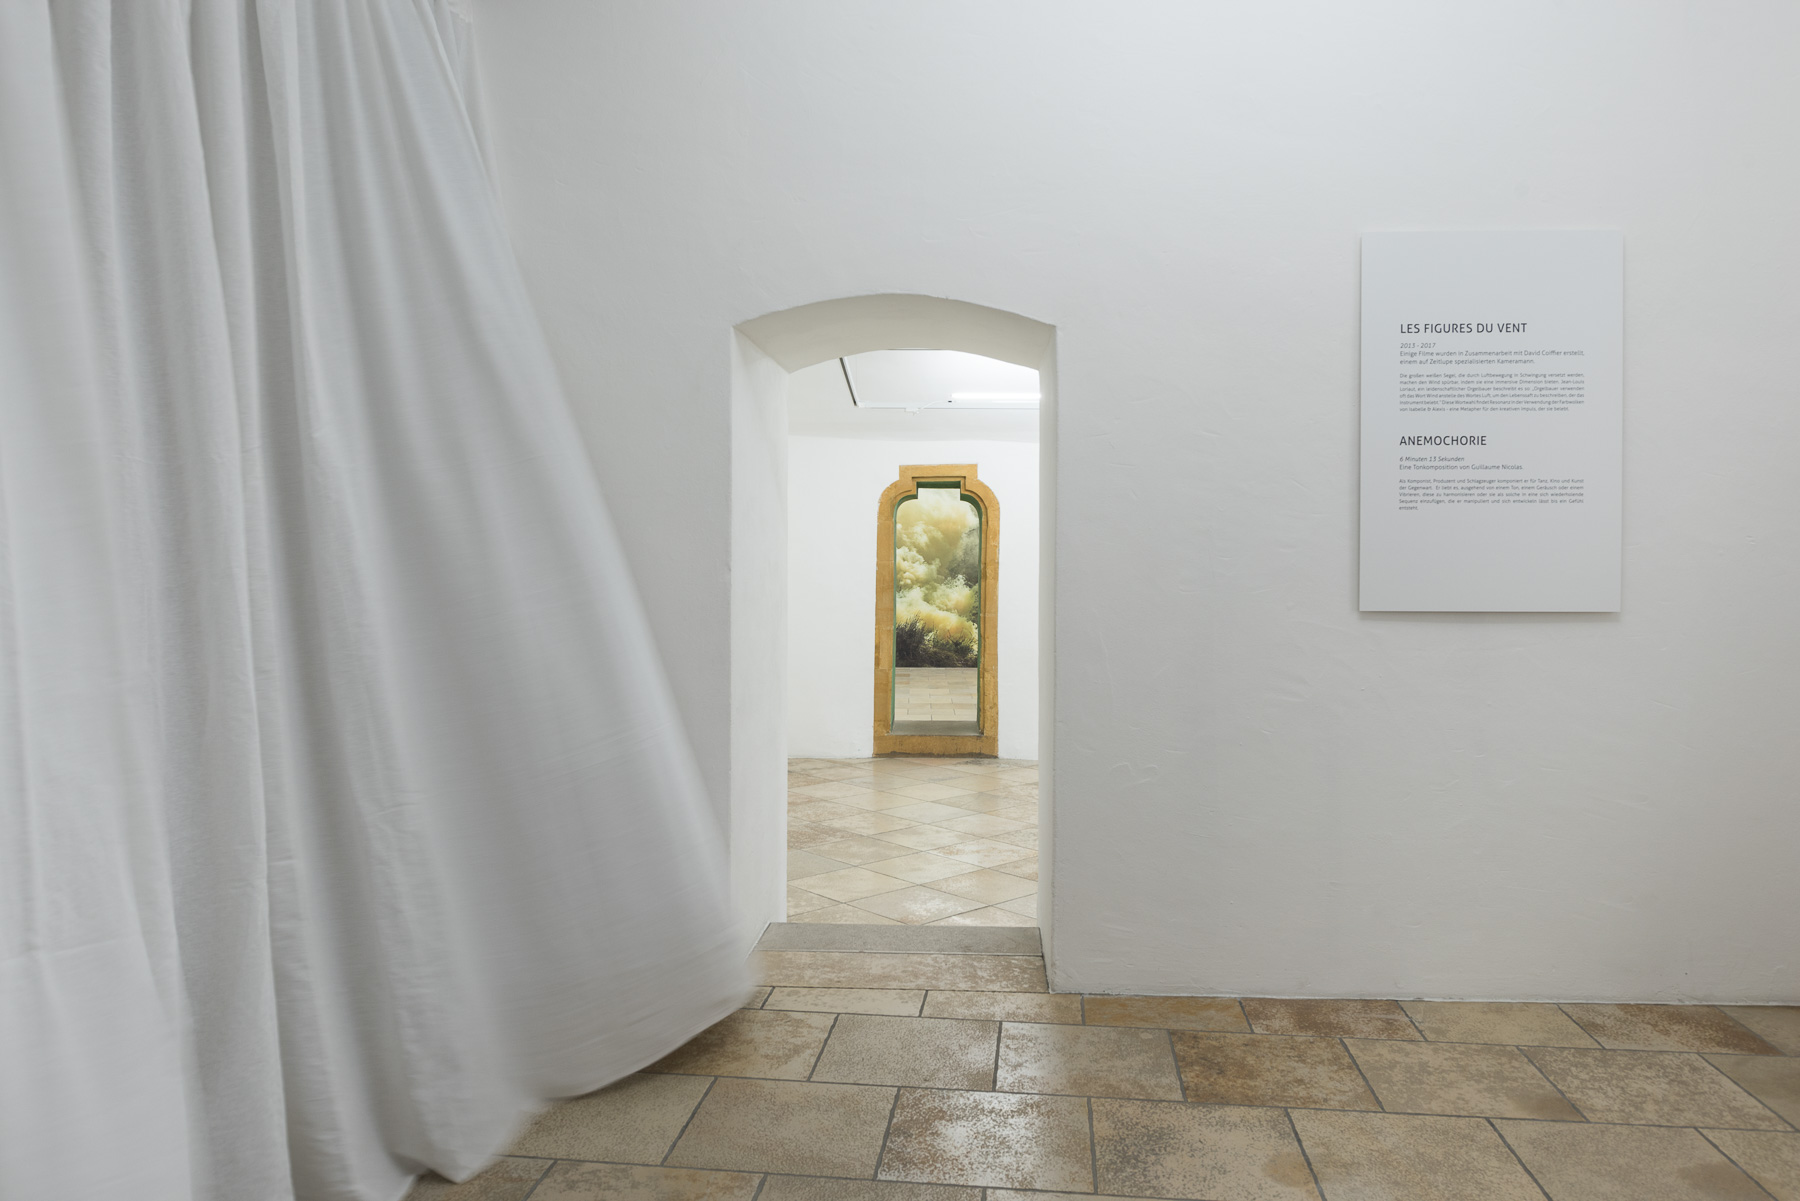 Isabelle-and-Alexis-Luftmuseum-12.jpg